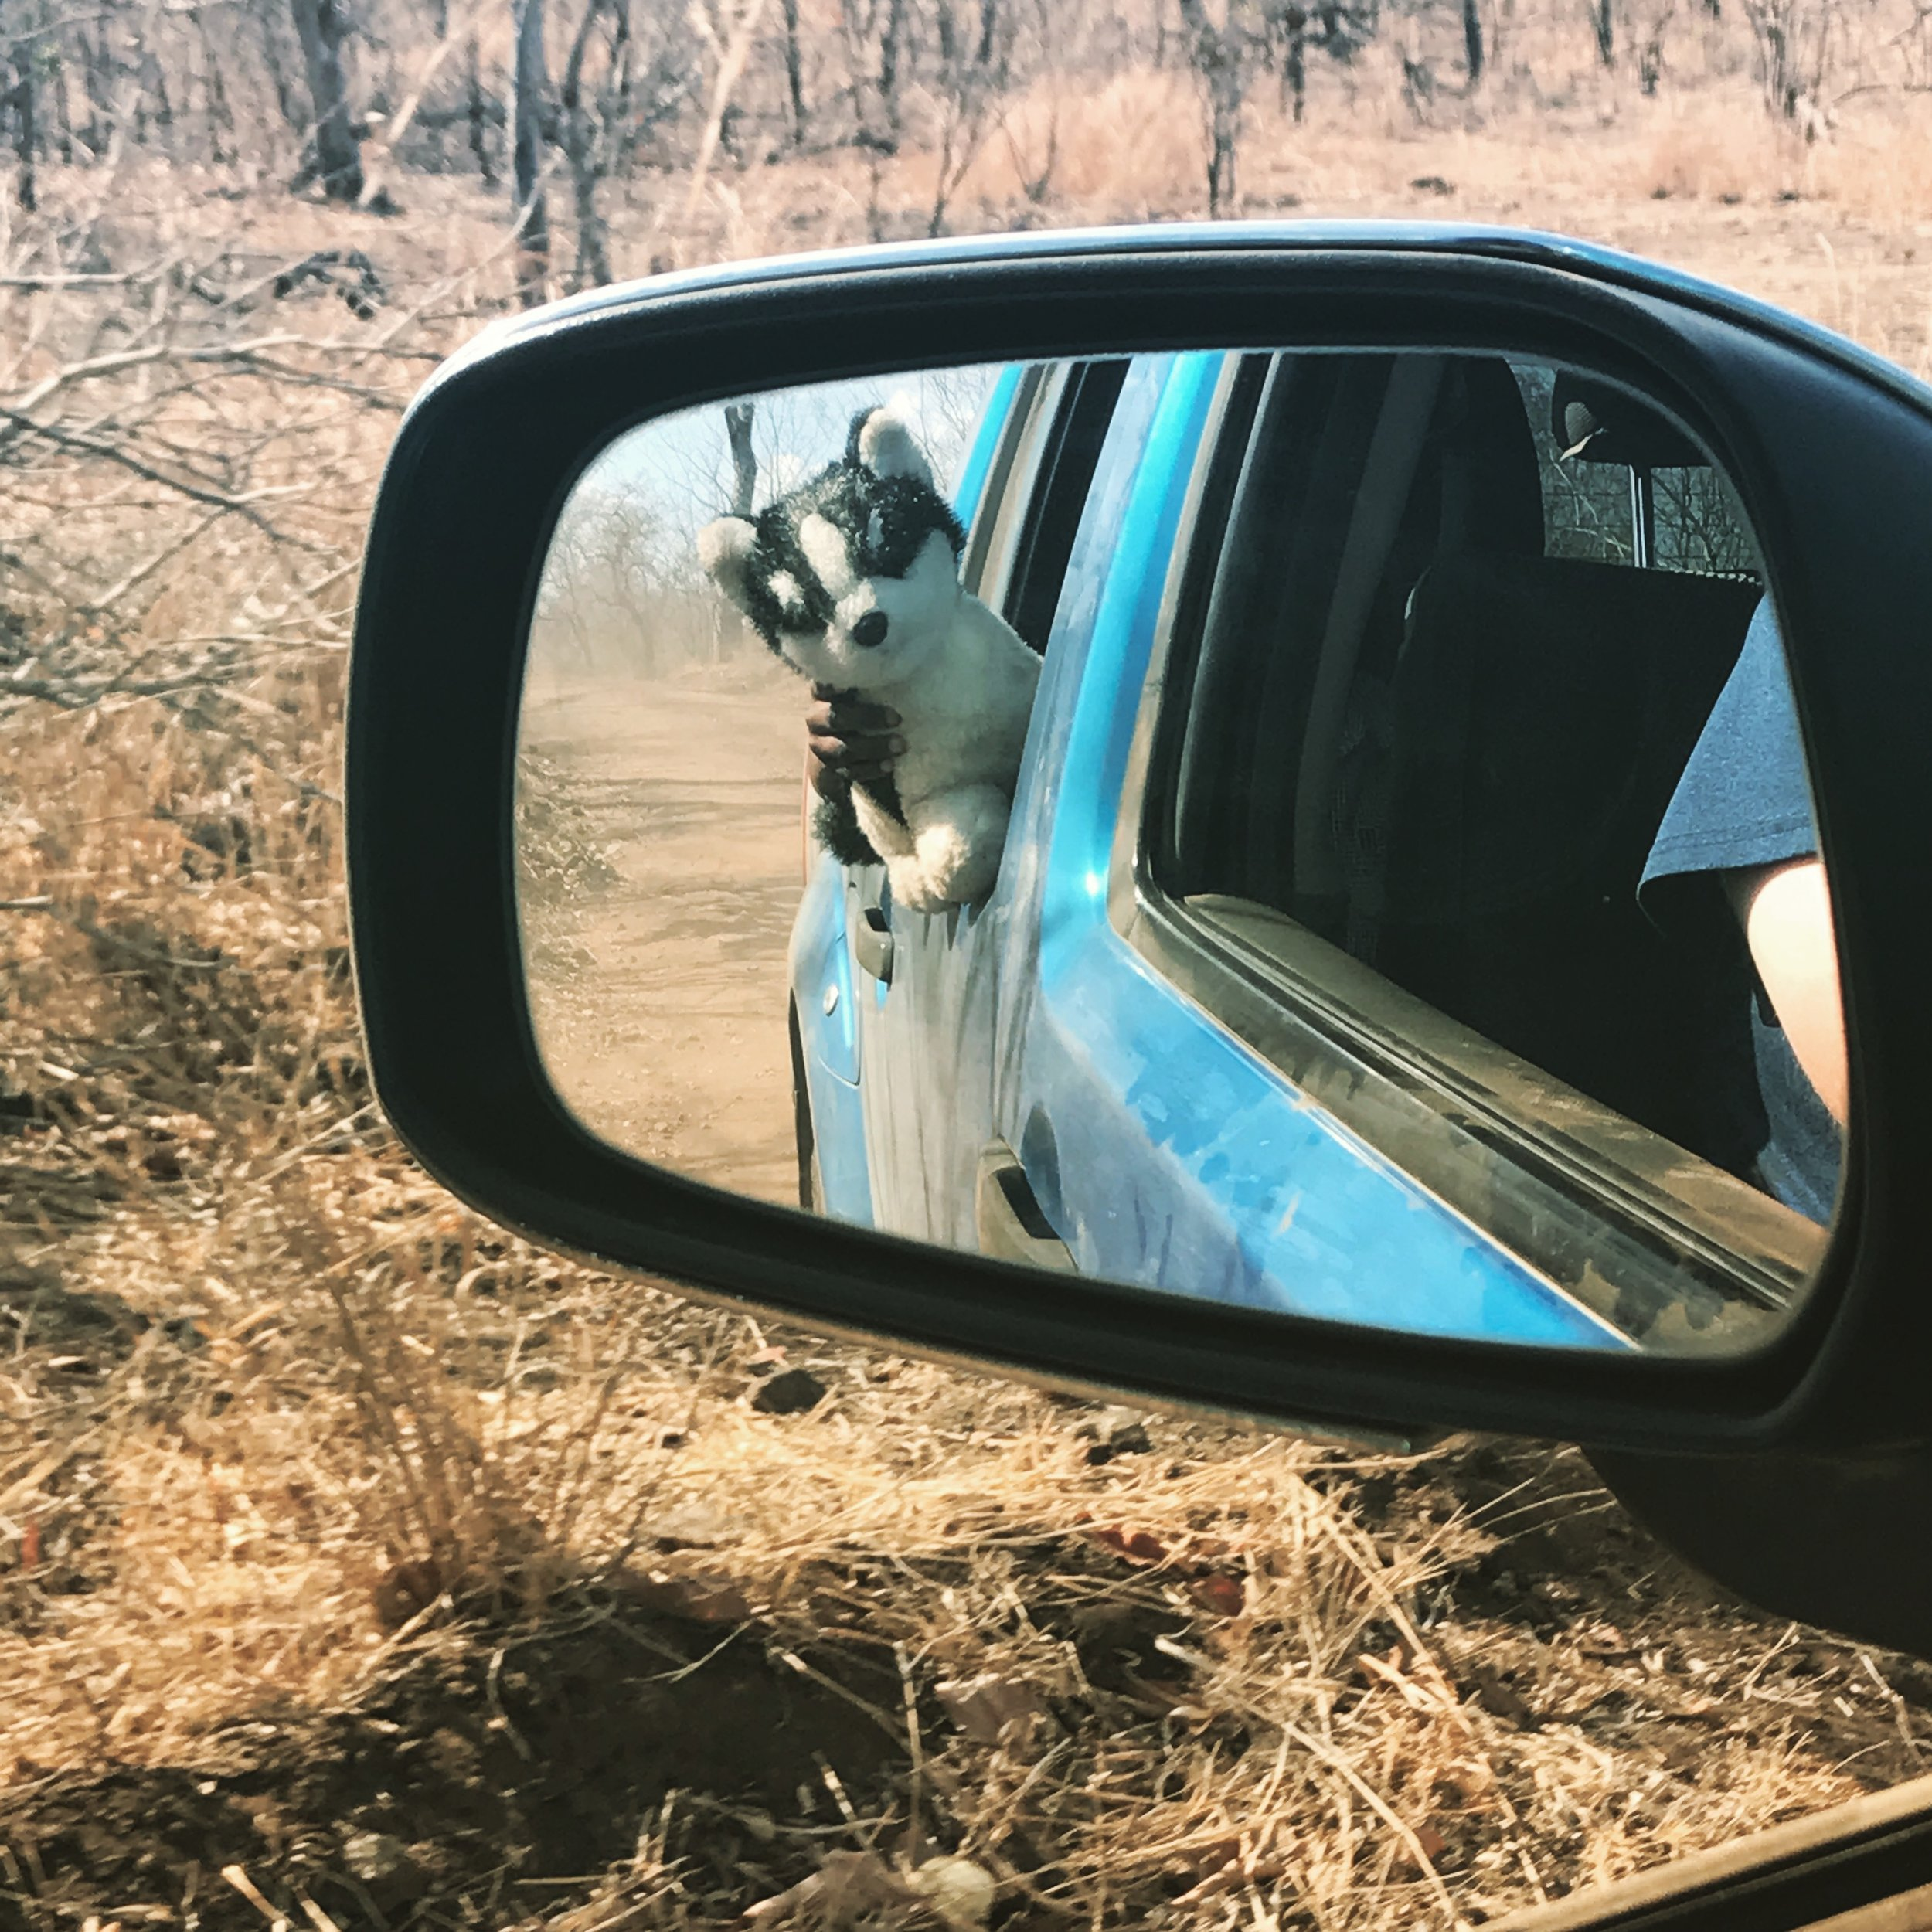 Timo didn't take this photo either; Jordan did! But Timo loved playing with JackJack the puppy and each time Jordan stuck his camera out the window I could see Timo slowly stretch JackJack out the window too so his reflection was in the mirror, haha!!